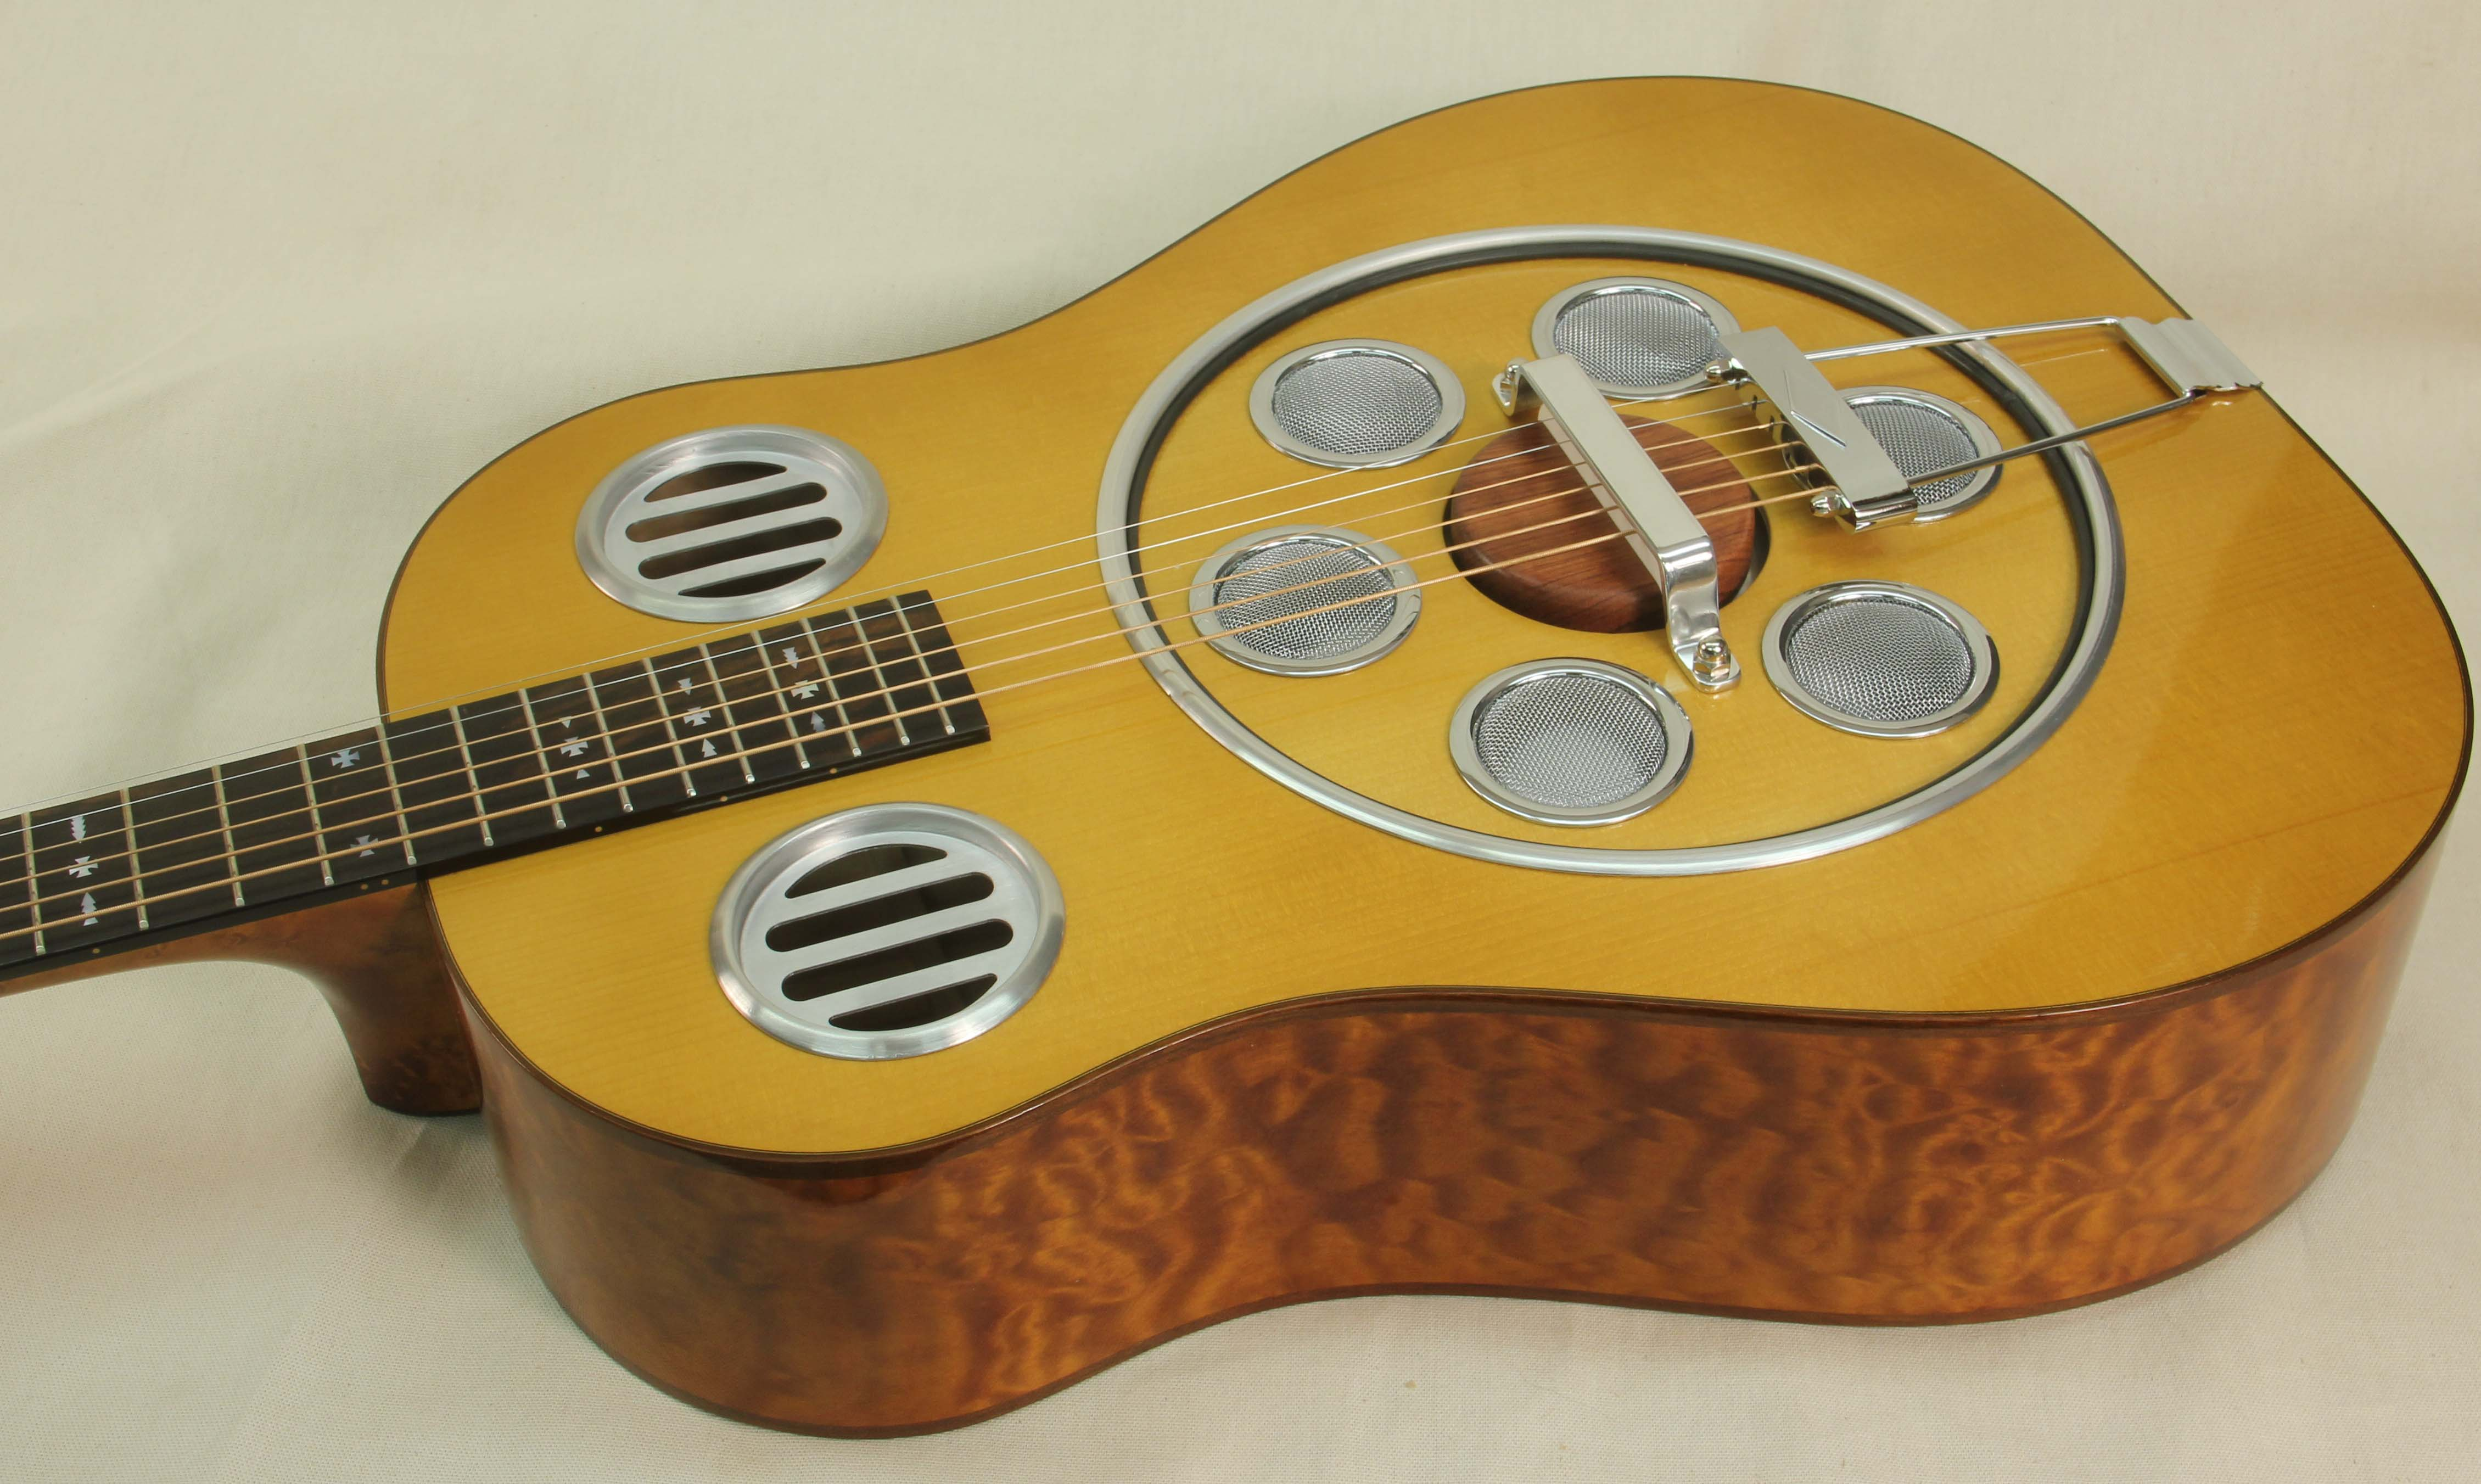 Del Vecchio Resonator Guitar with Adirondack Spruce